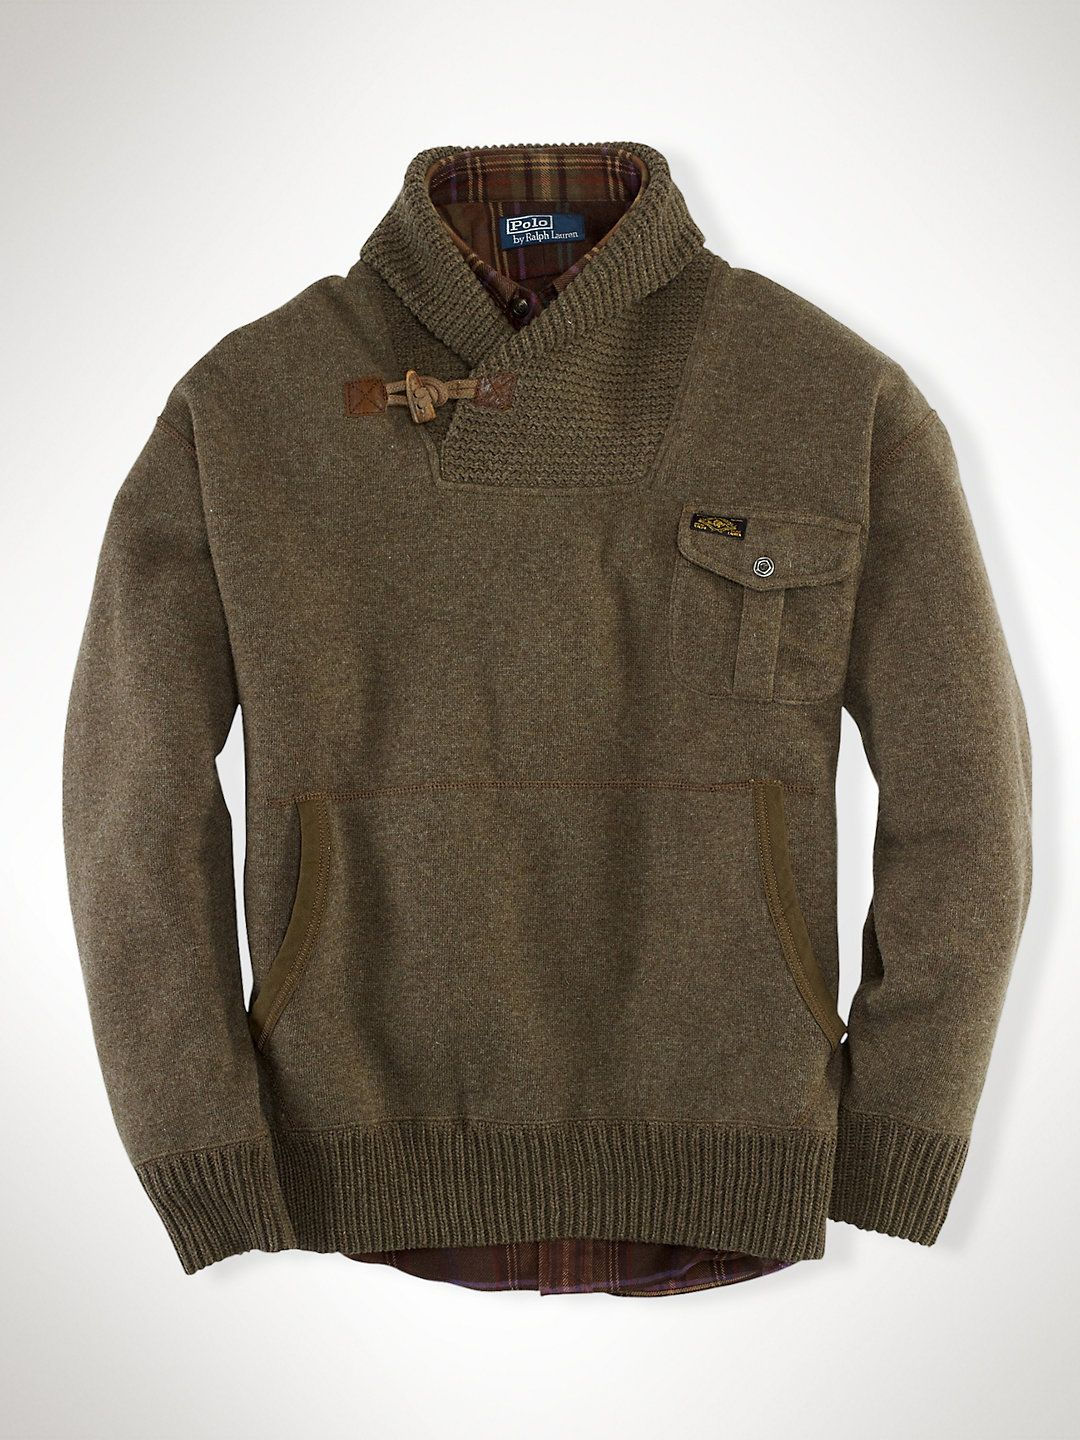 North Country Fleece Pullover  Sweatshirts   Sweatshirts & TShirts  RalphLauren com is part of Mens fashion -